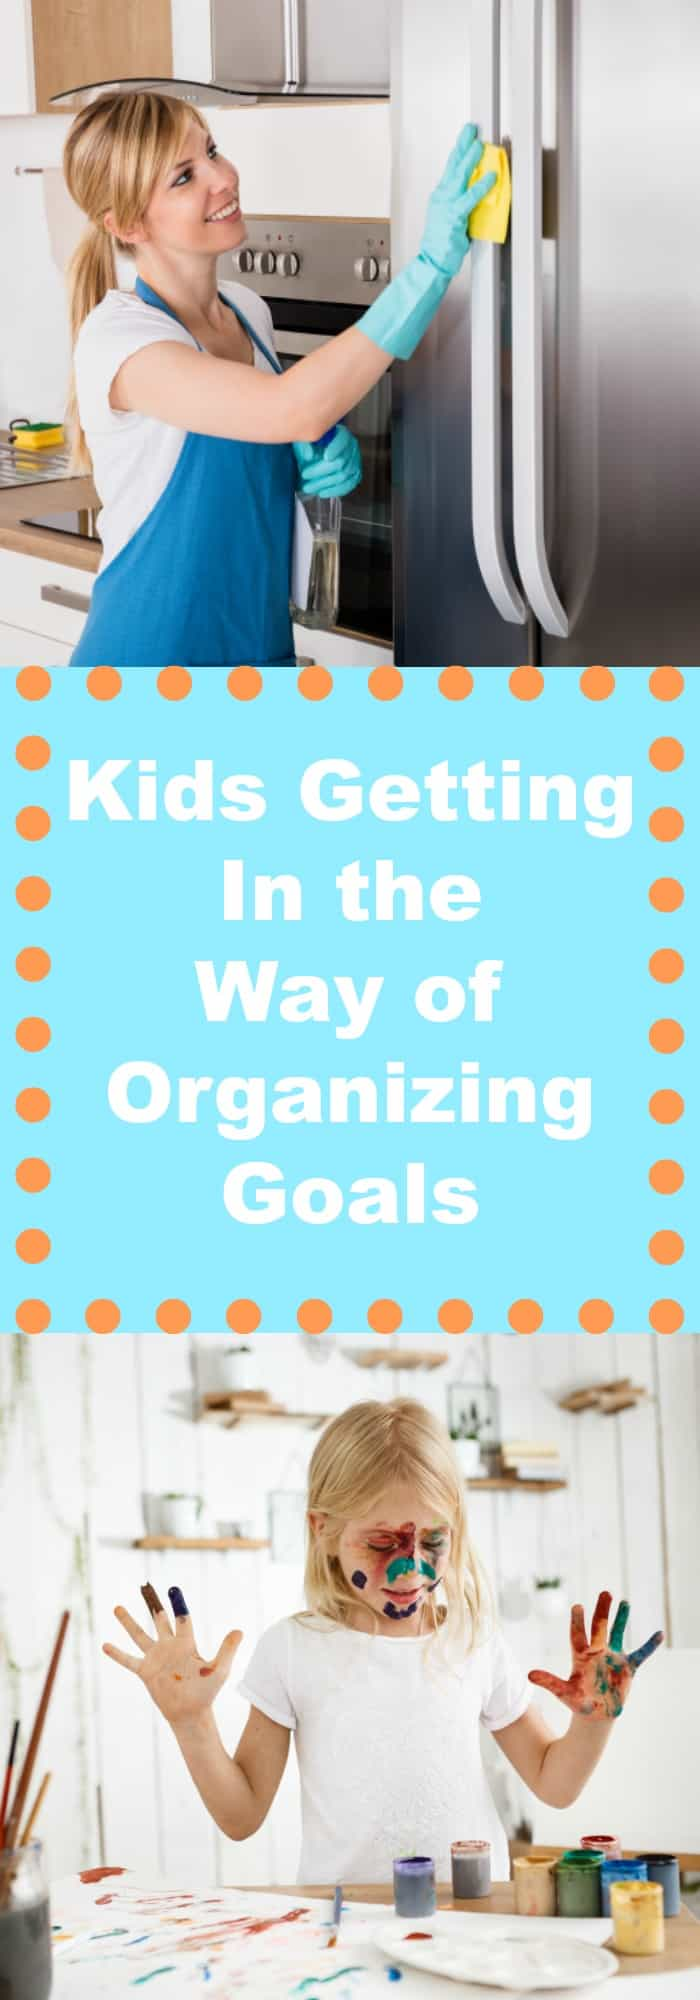 Organization-Kids Getting in the Way of Organizing Goals-Organized Mom